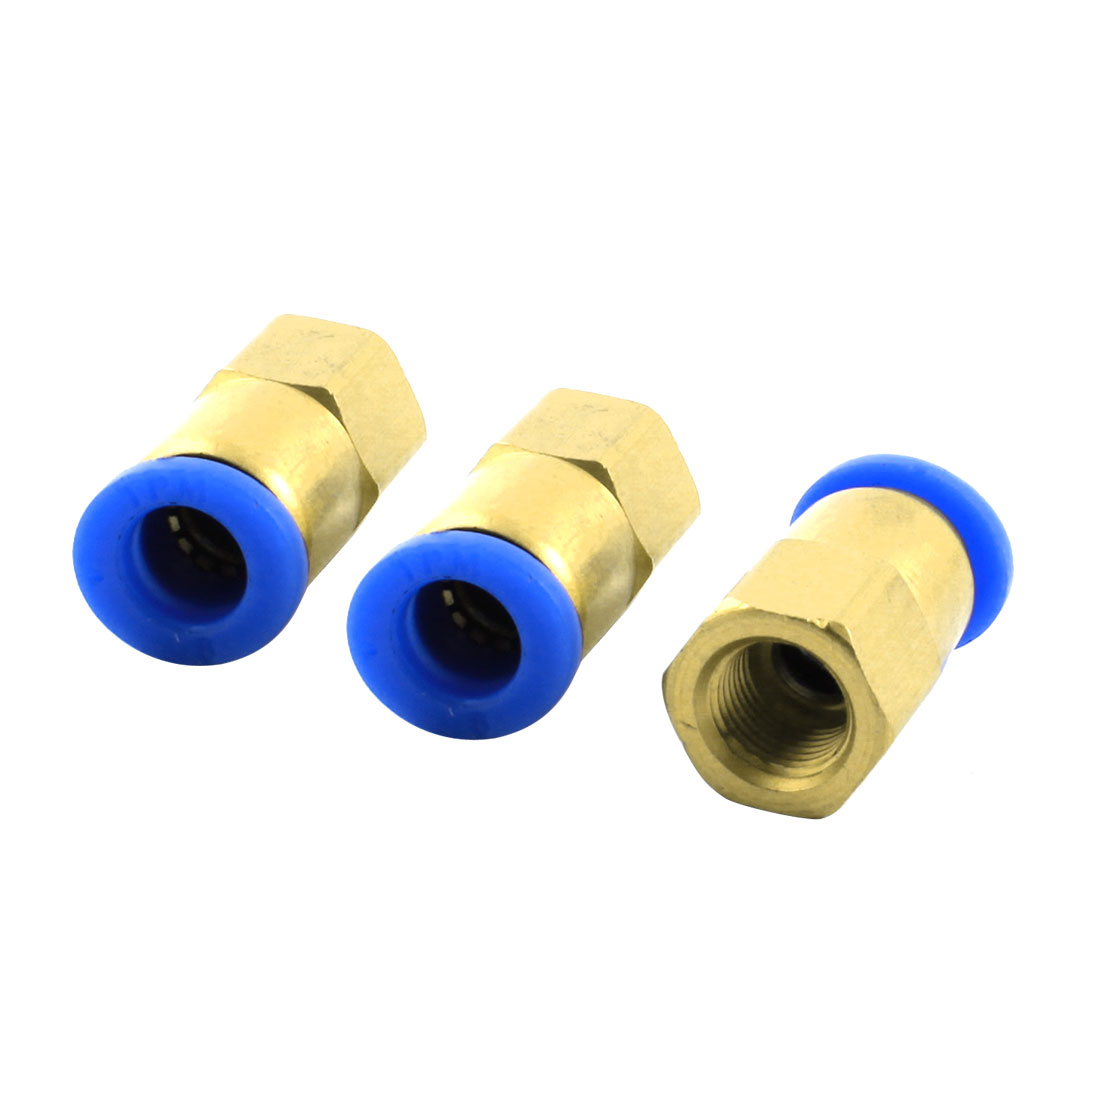 3pcs 1/4PT Thread to 8mm Hole Tube Air Pneumatic Push in Quick Connector